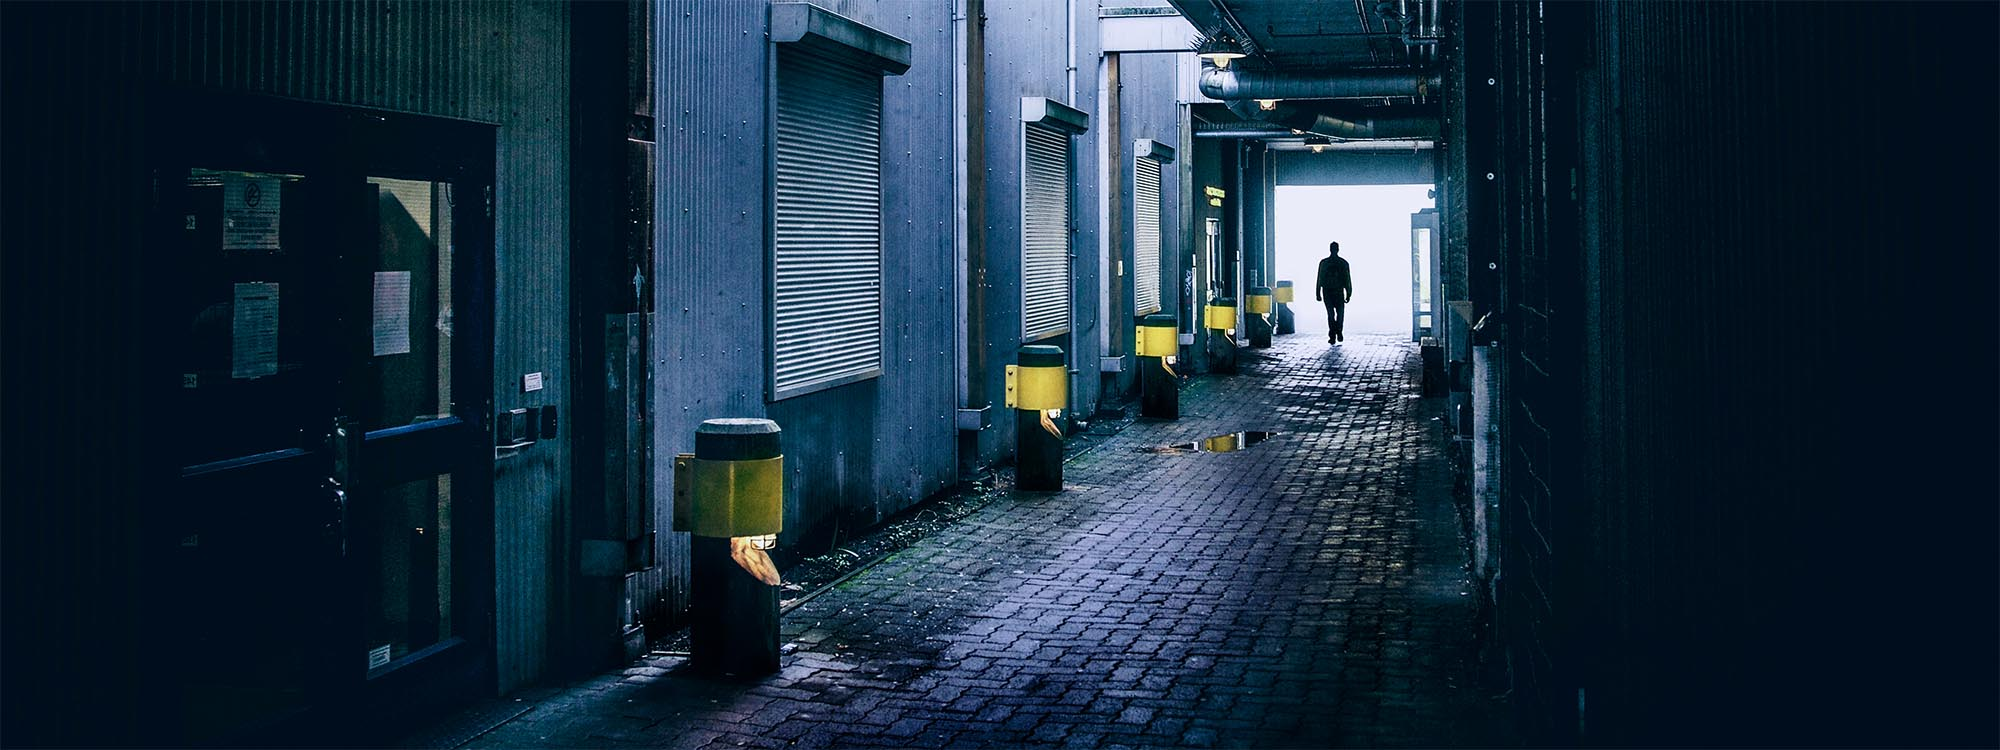 Man walking down alley